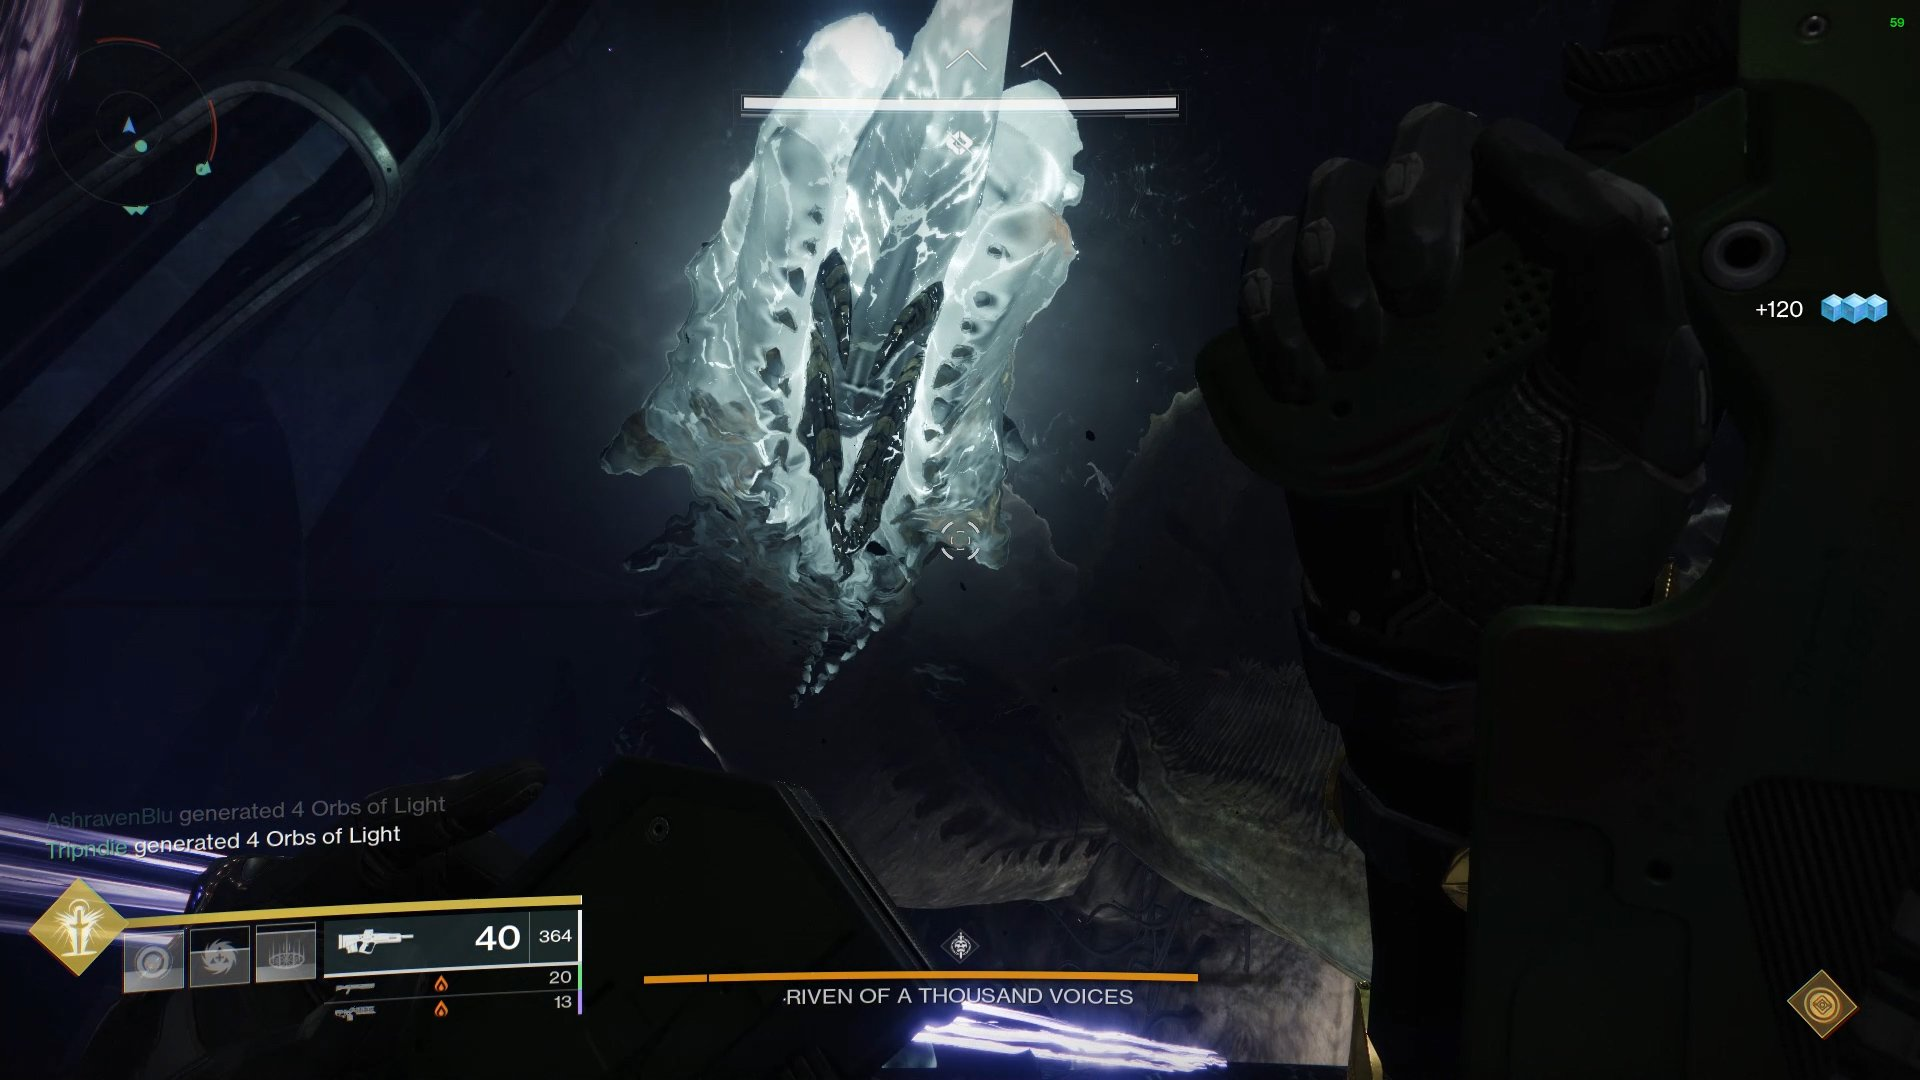 At the top level, players will need to either shoot Riven's mouth or bait out an tentacle attack and damage it to make her stagger, revealing two glowing eyes.